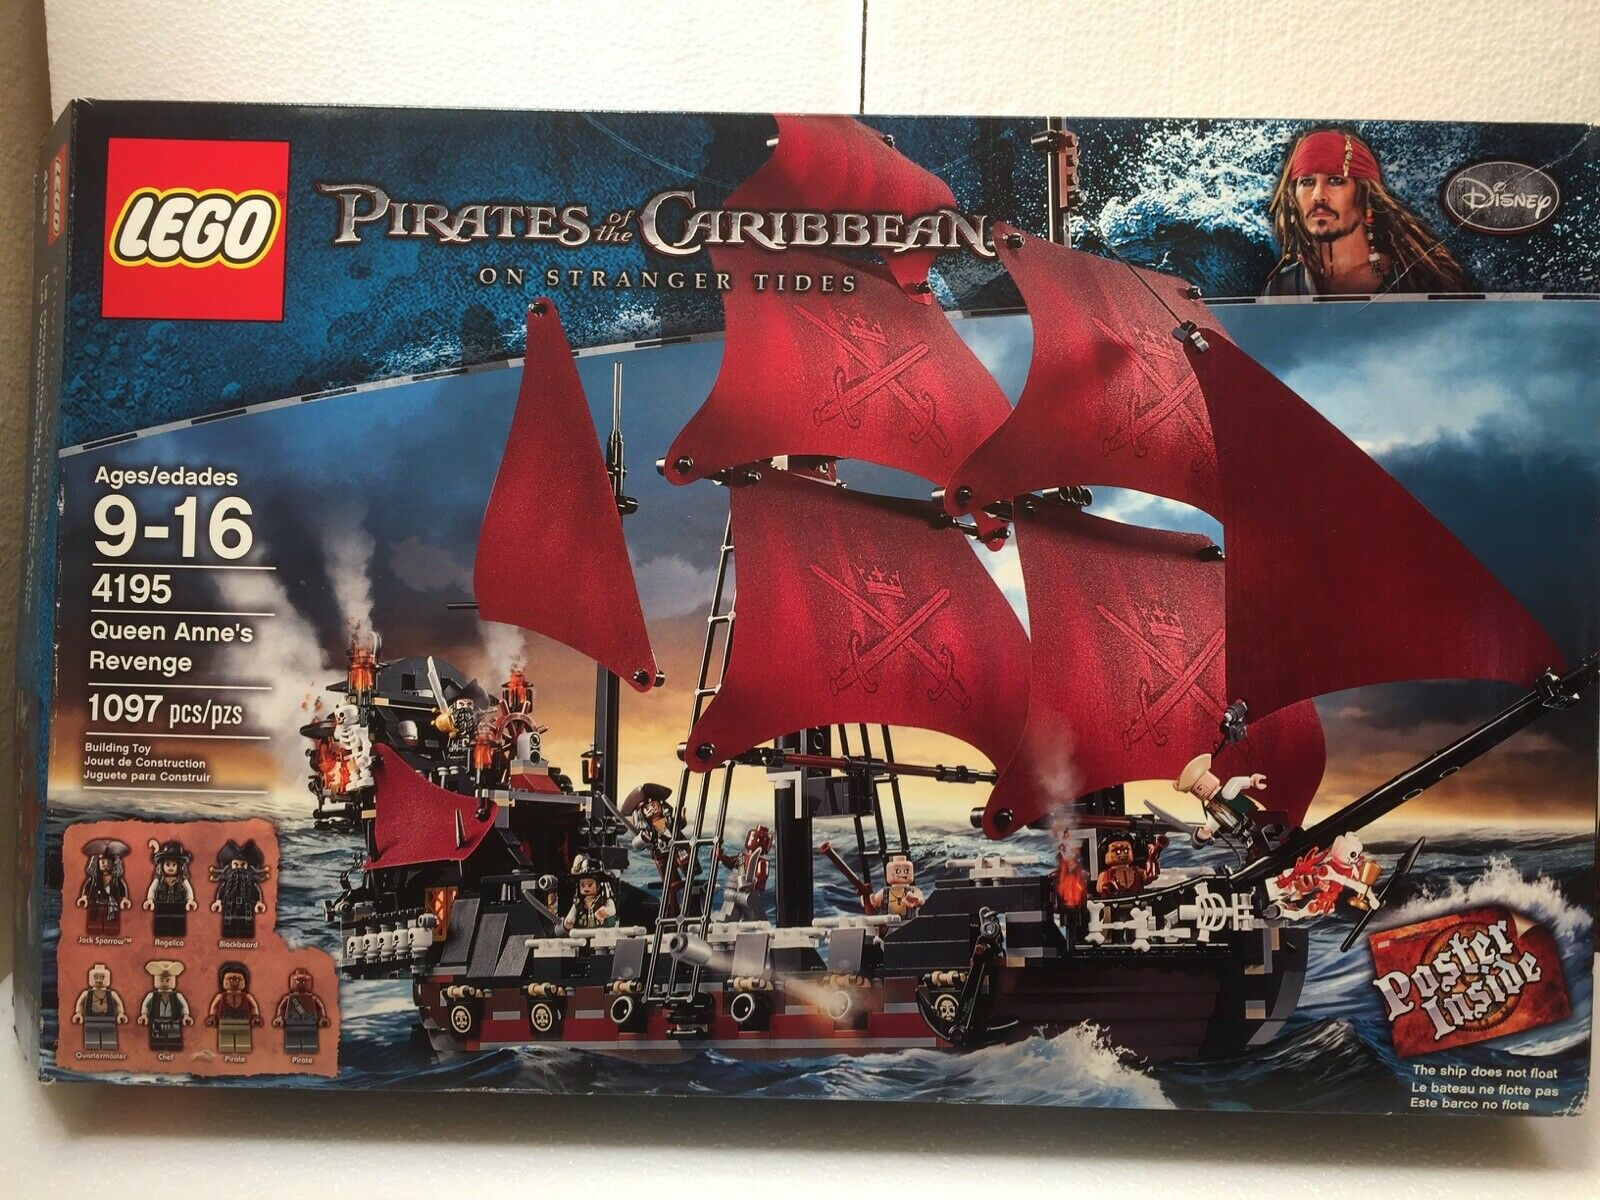 LEGO 4195 4195 4195 Pirates Of The Caribbean - Queen Anne's Revenge 100% complete 2ed3c8